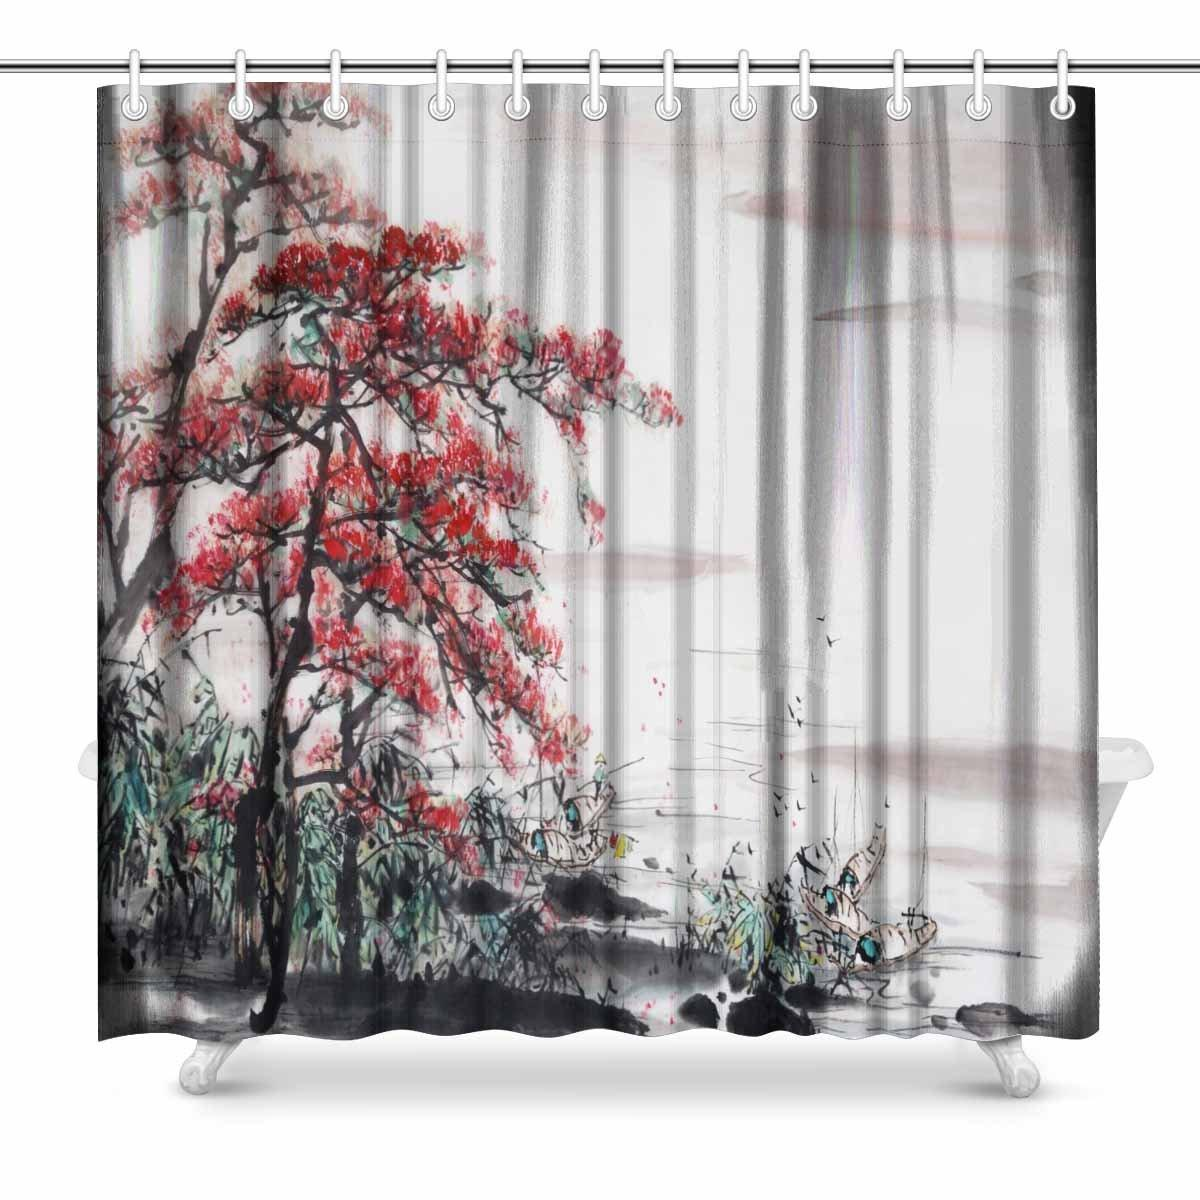 2018 Aplysia Landscape Scene Decor Painting Artwork Print Traditional Chinese Art Shower Curtain Set 72 X Inches From Lienal